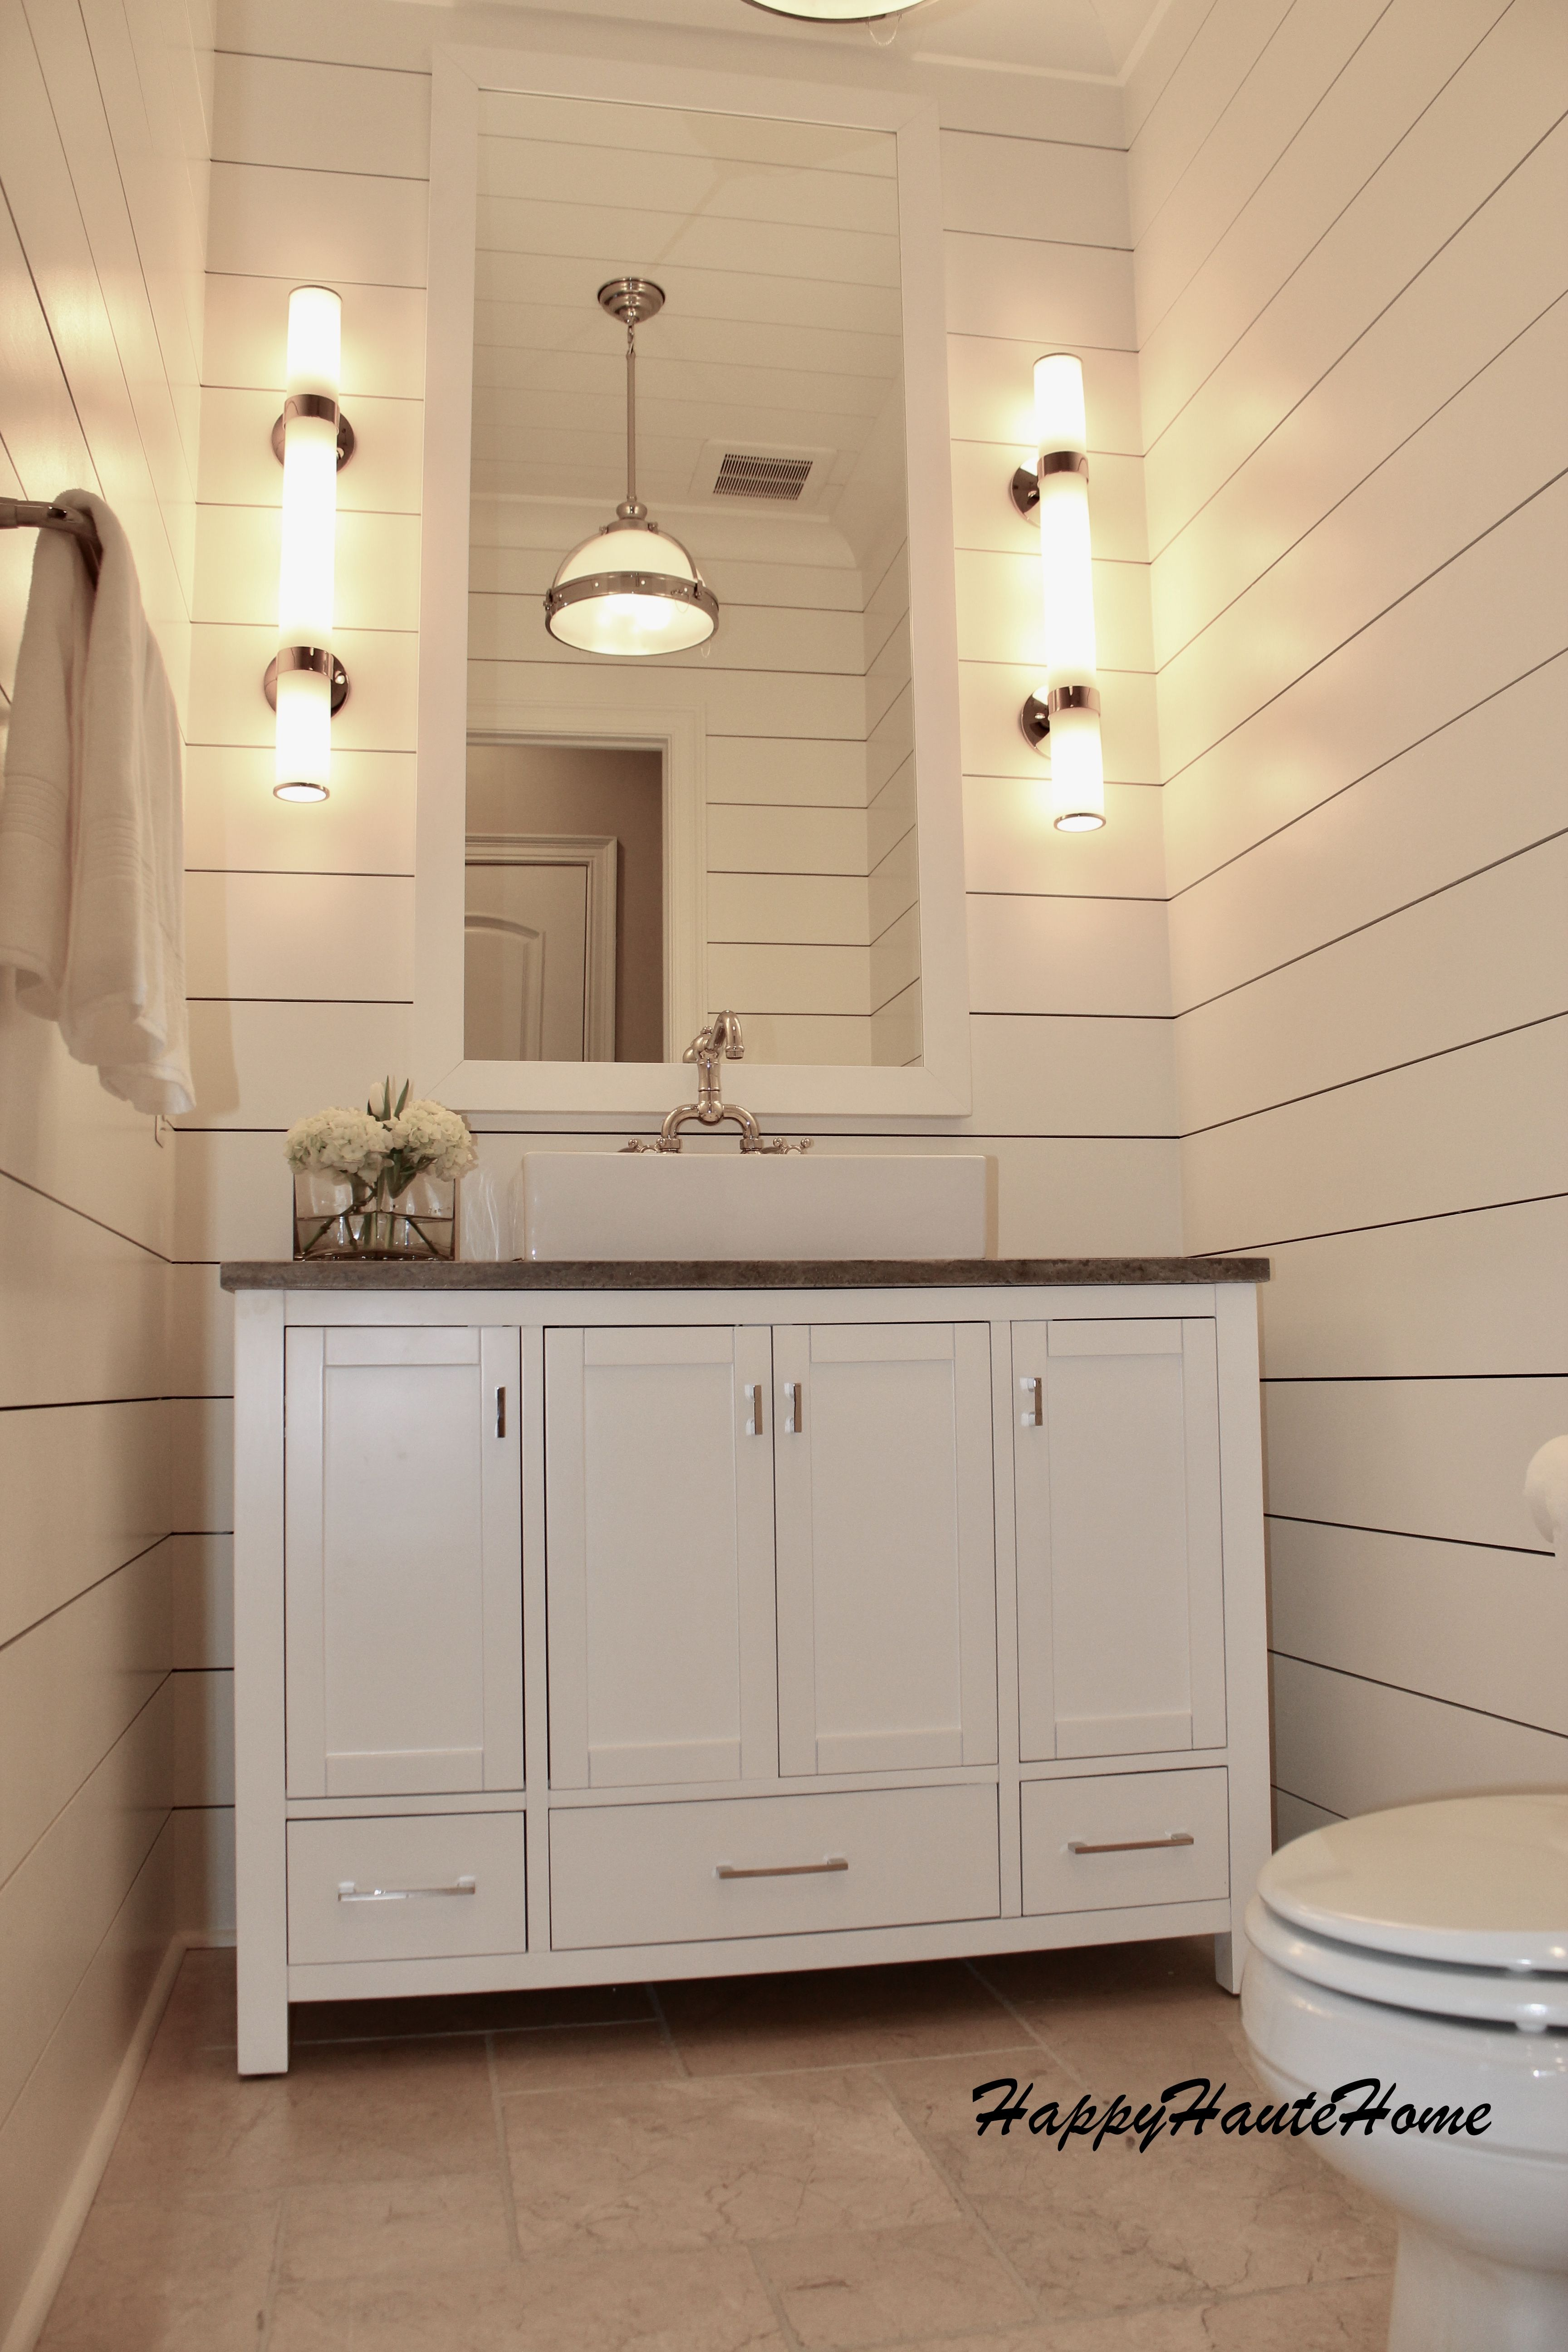 Shiplap Bathroom Gets A Major Reno Using 10 Shiplap Boards 36 Wall Sconces Travertine Countertop Shiplap Bathroom Shiplap Bathroom Wall Powder Room Remodel